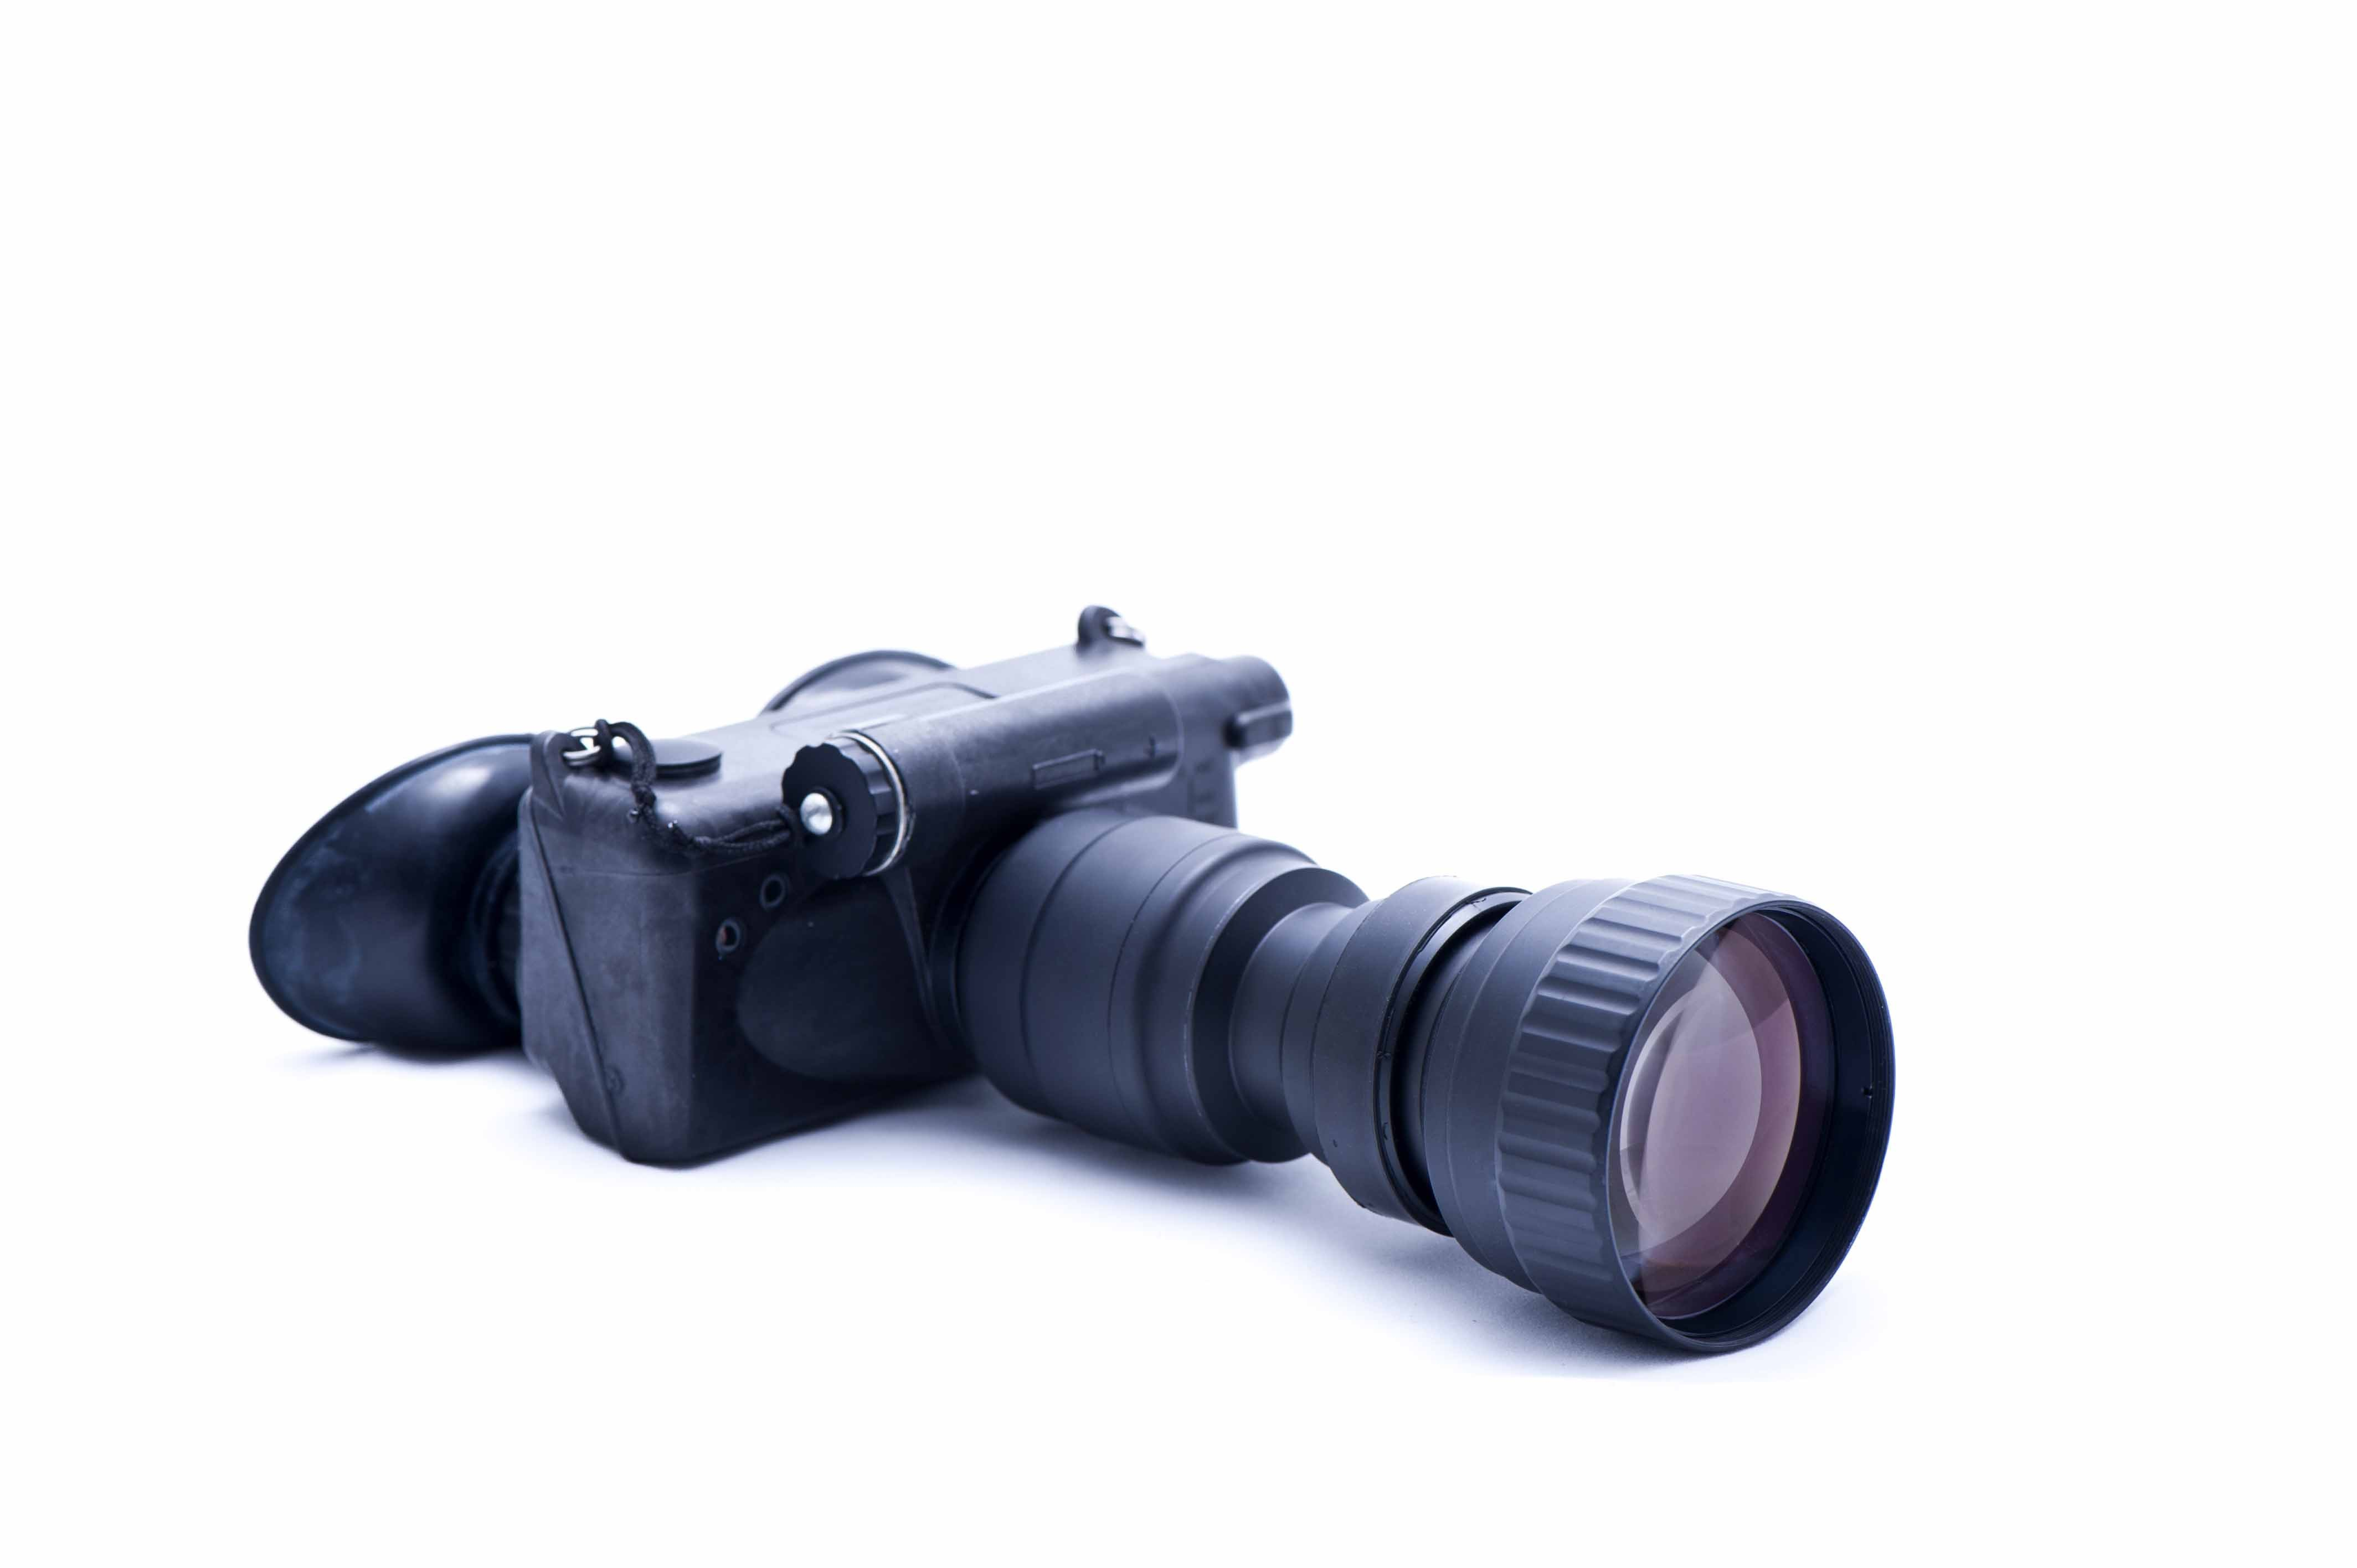 OPTIX DIANA 3x - Night Vision Binocular